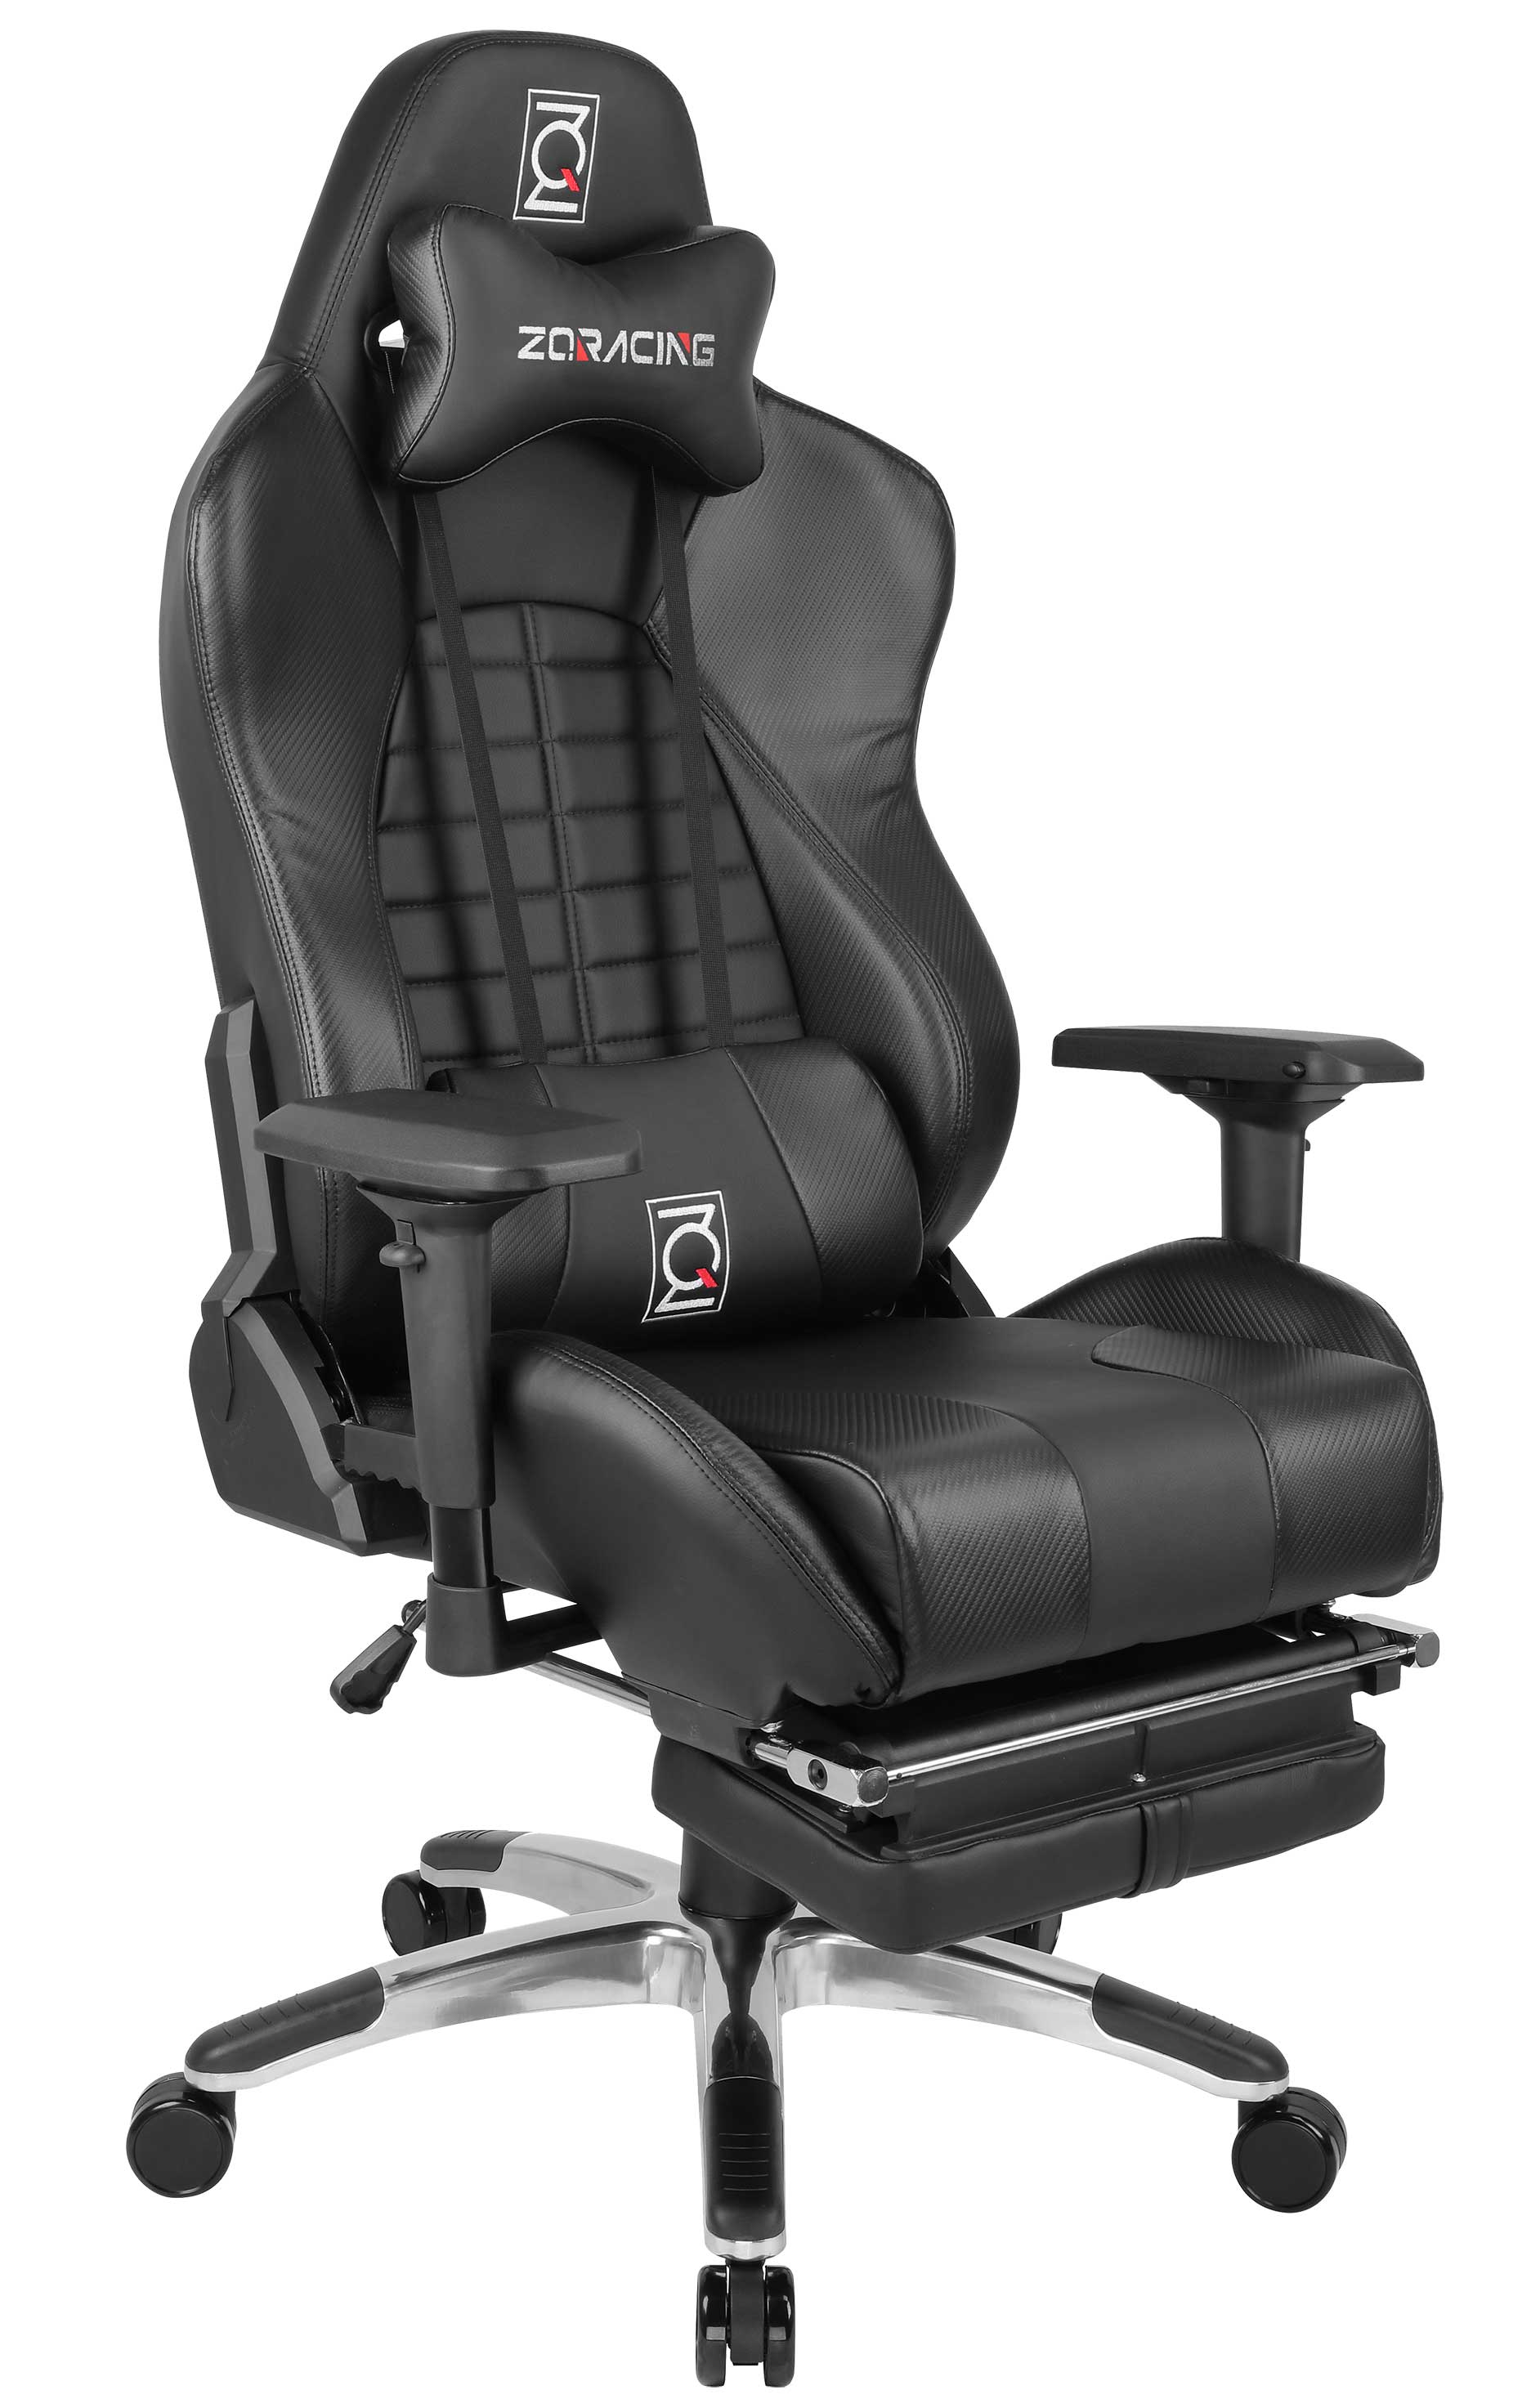 of the hyper sport is a breeze and zqracing ensure that you have everything you need to put this chair together with no stress whatsoever